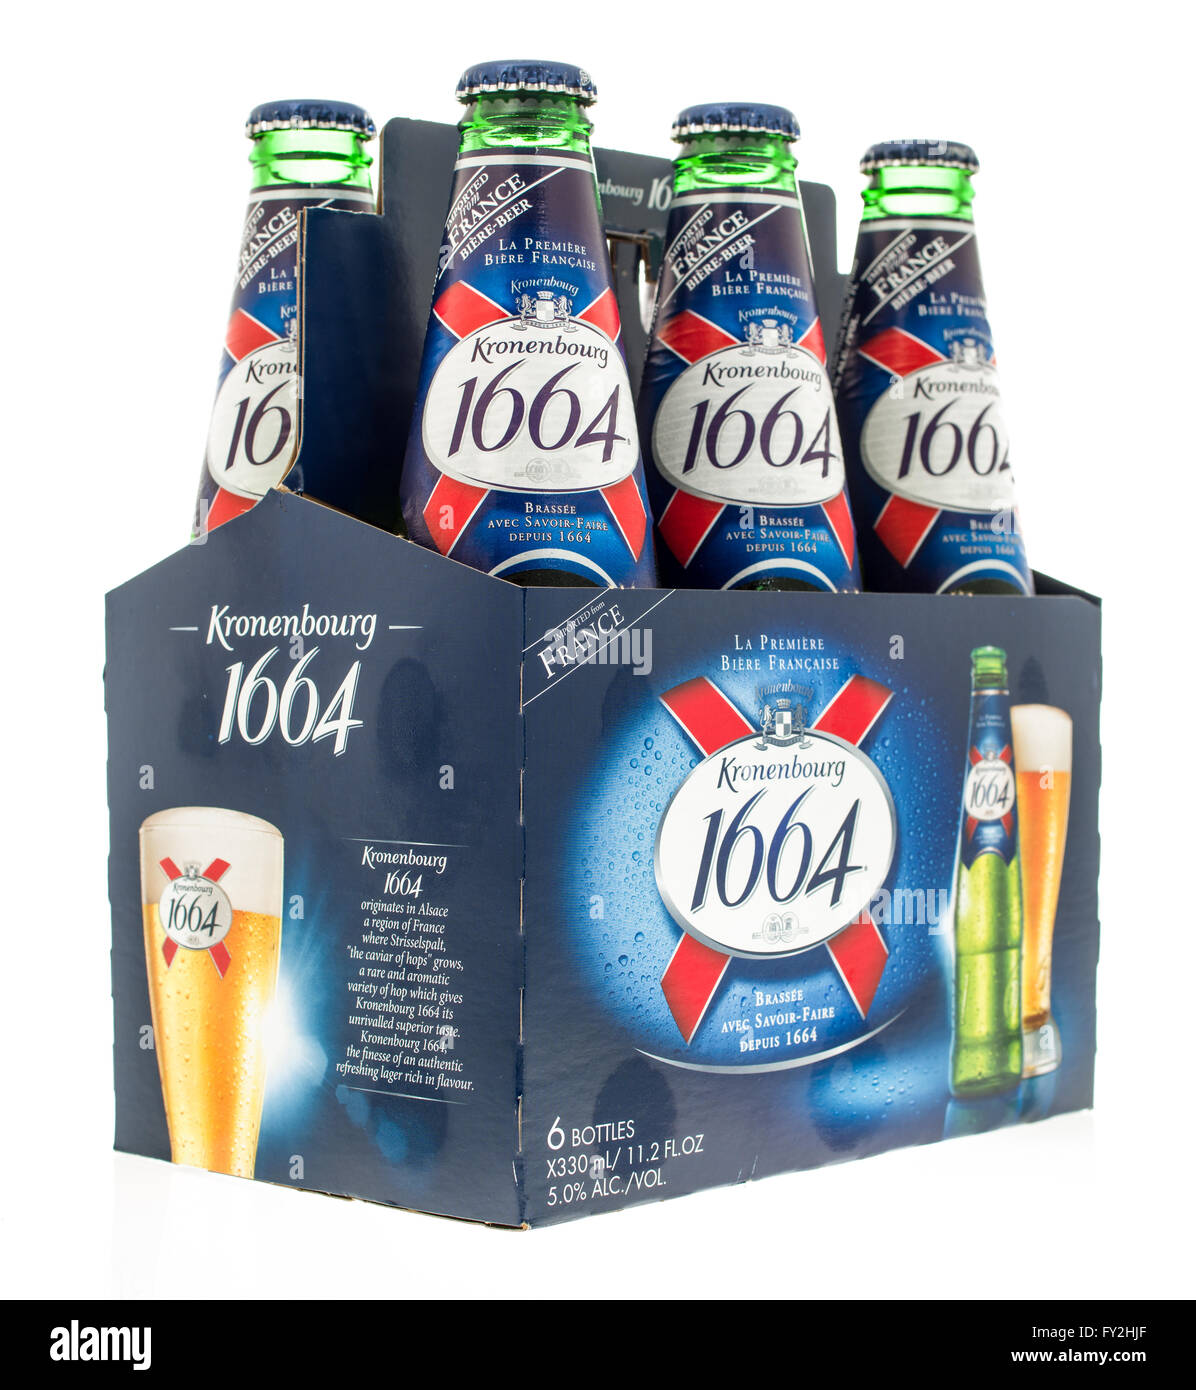 Kronenbourg round Beer Mats in packs of 1 and 3